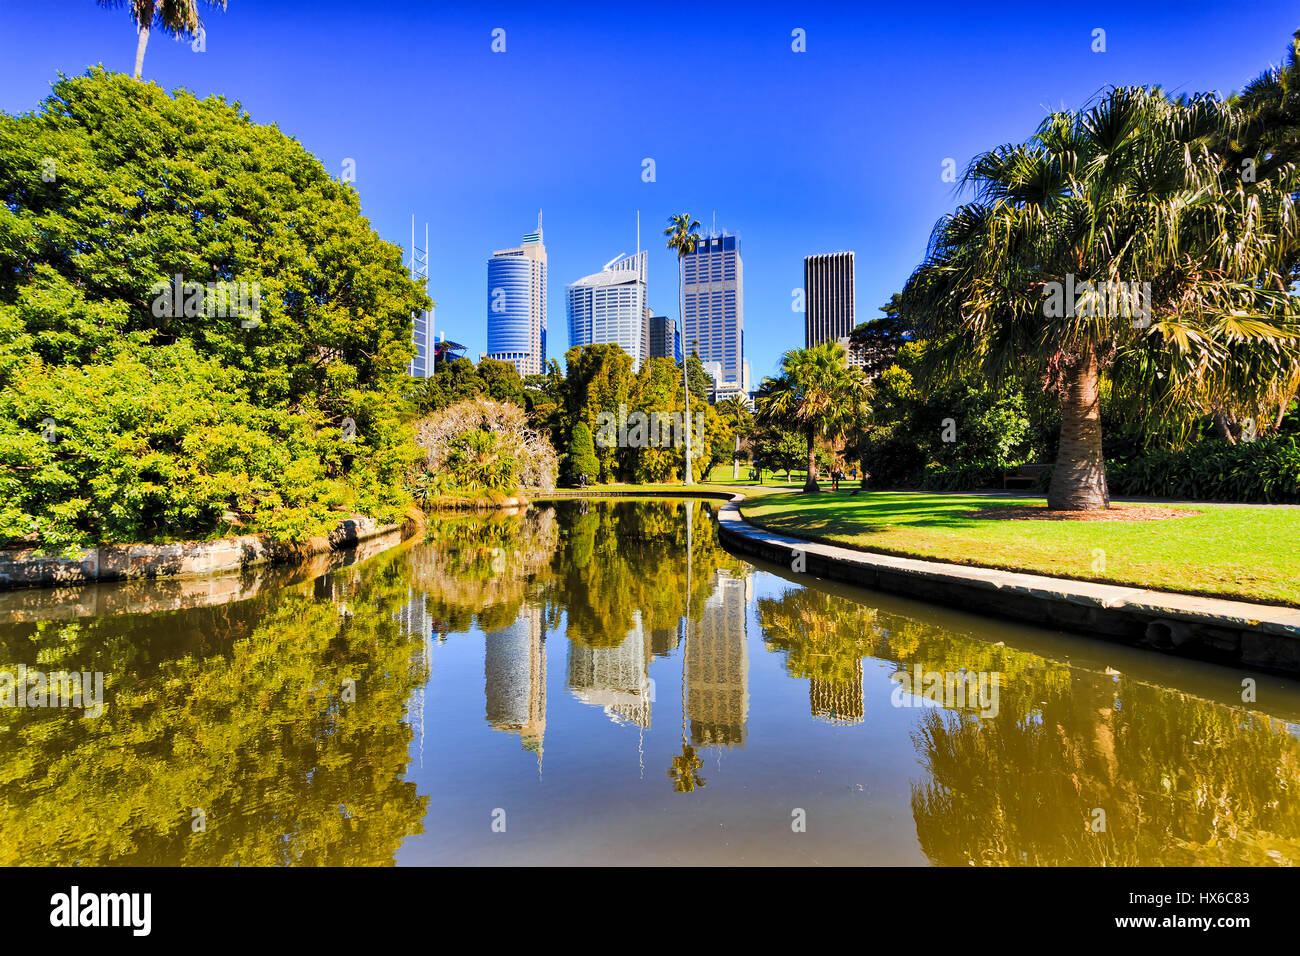 Sydney city Royal Botanic garden pond reflecting CBD skyscrapers surrounded by green exotic trees - Stock Image